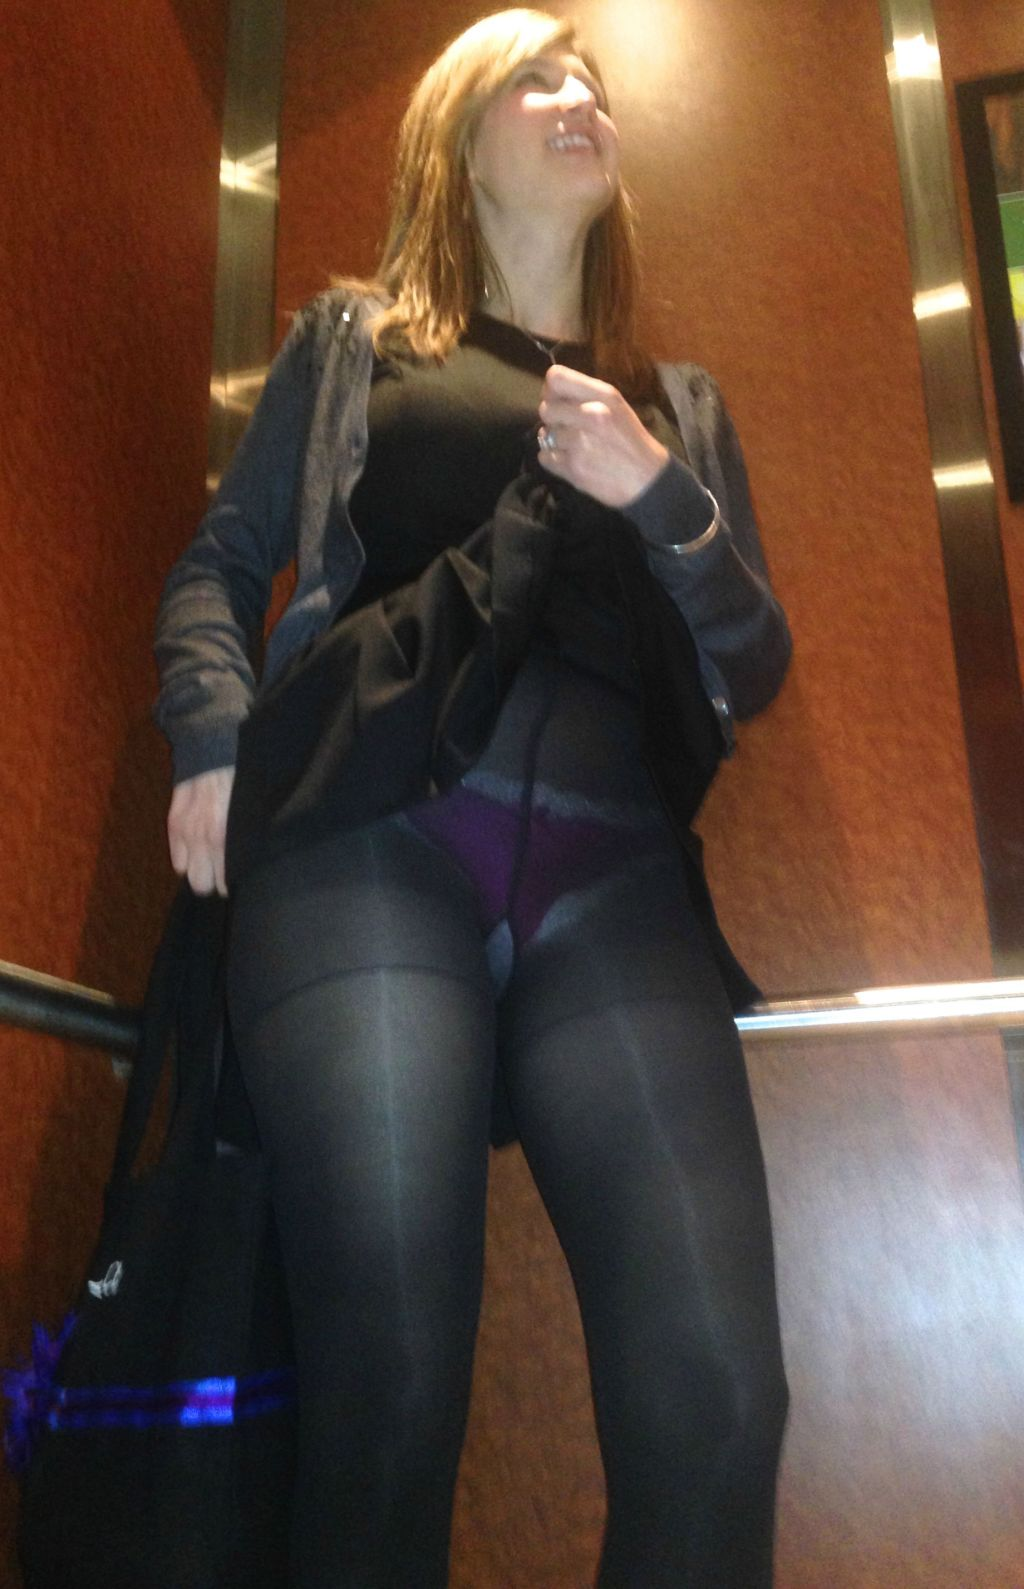 crazy wife in vegas elevator